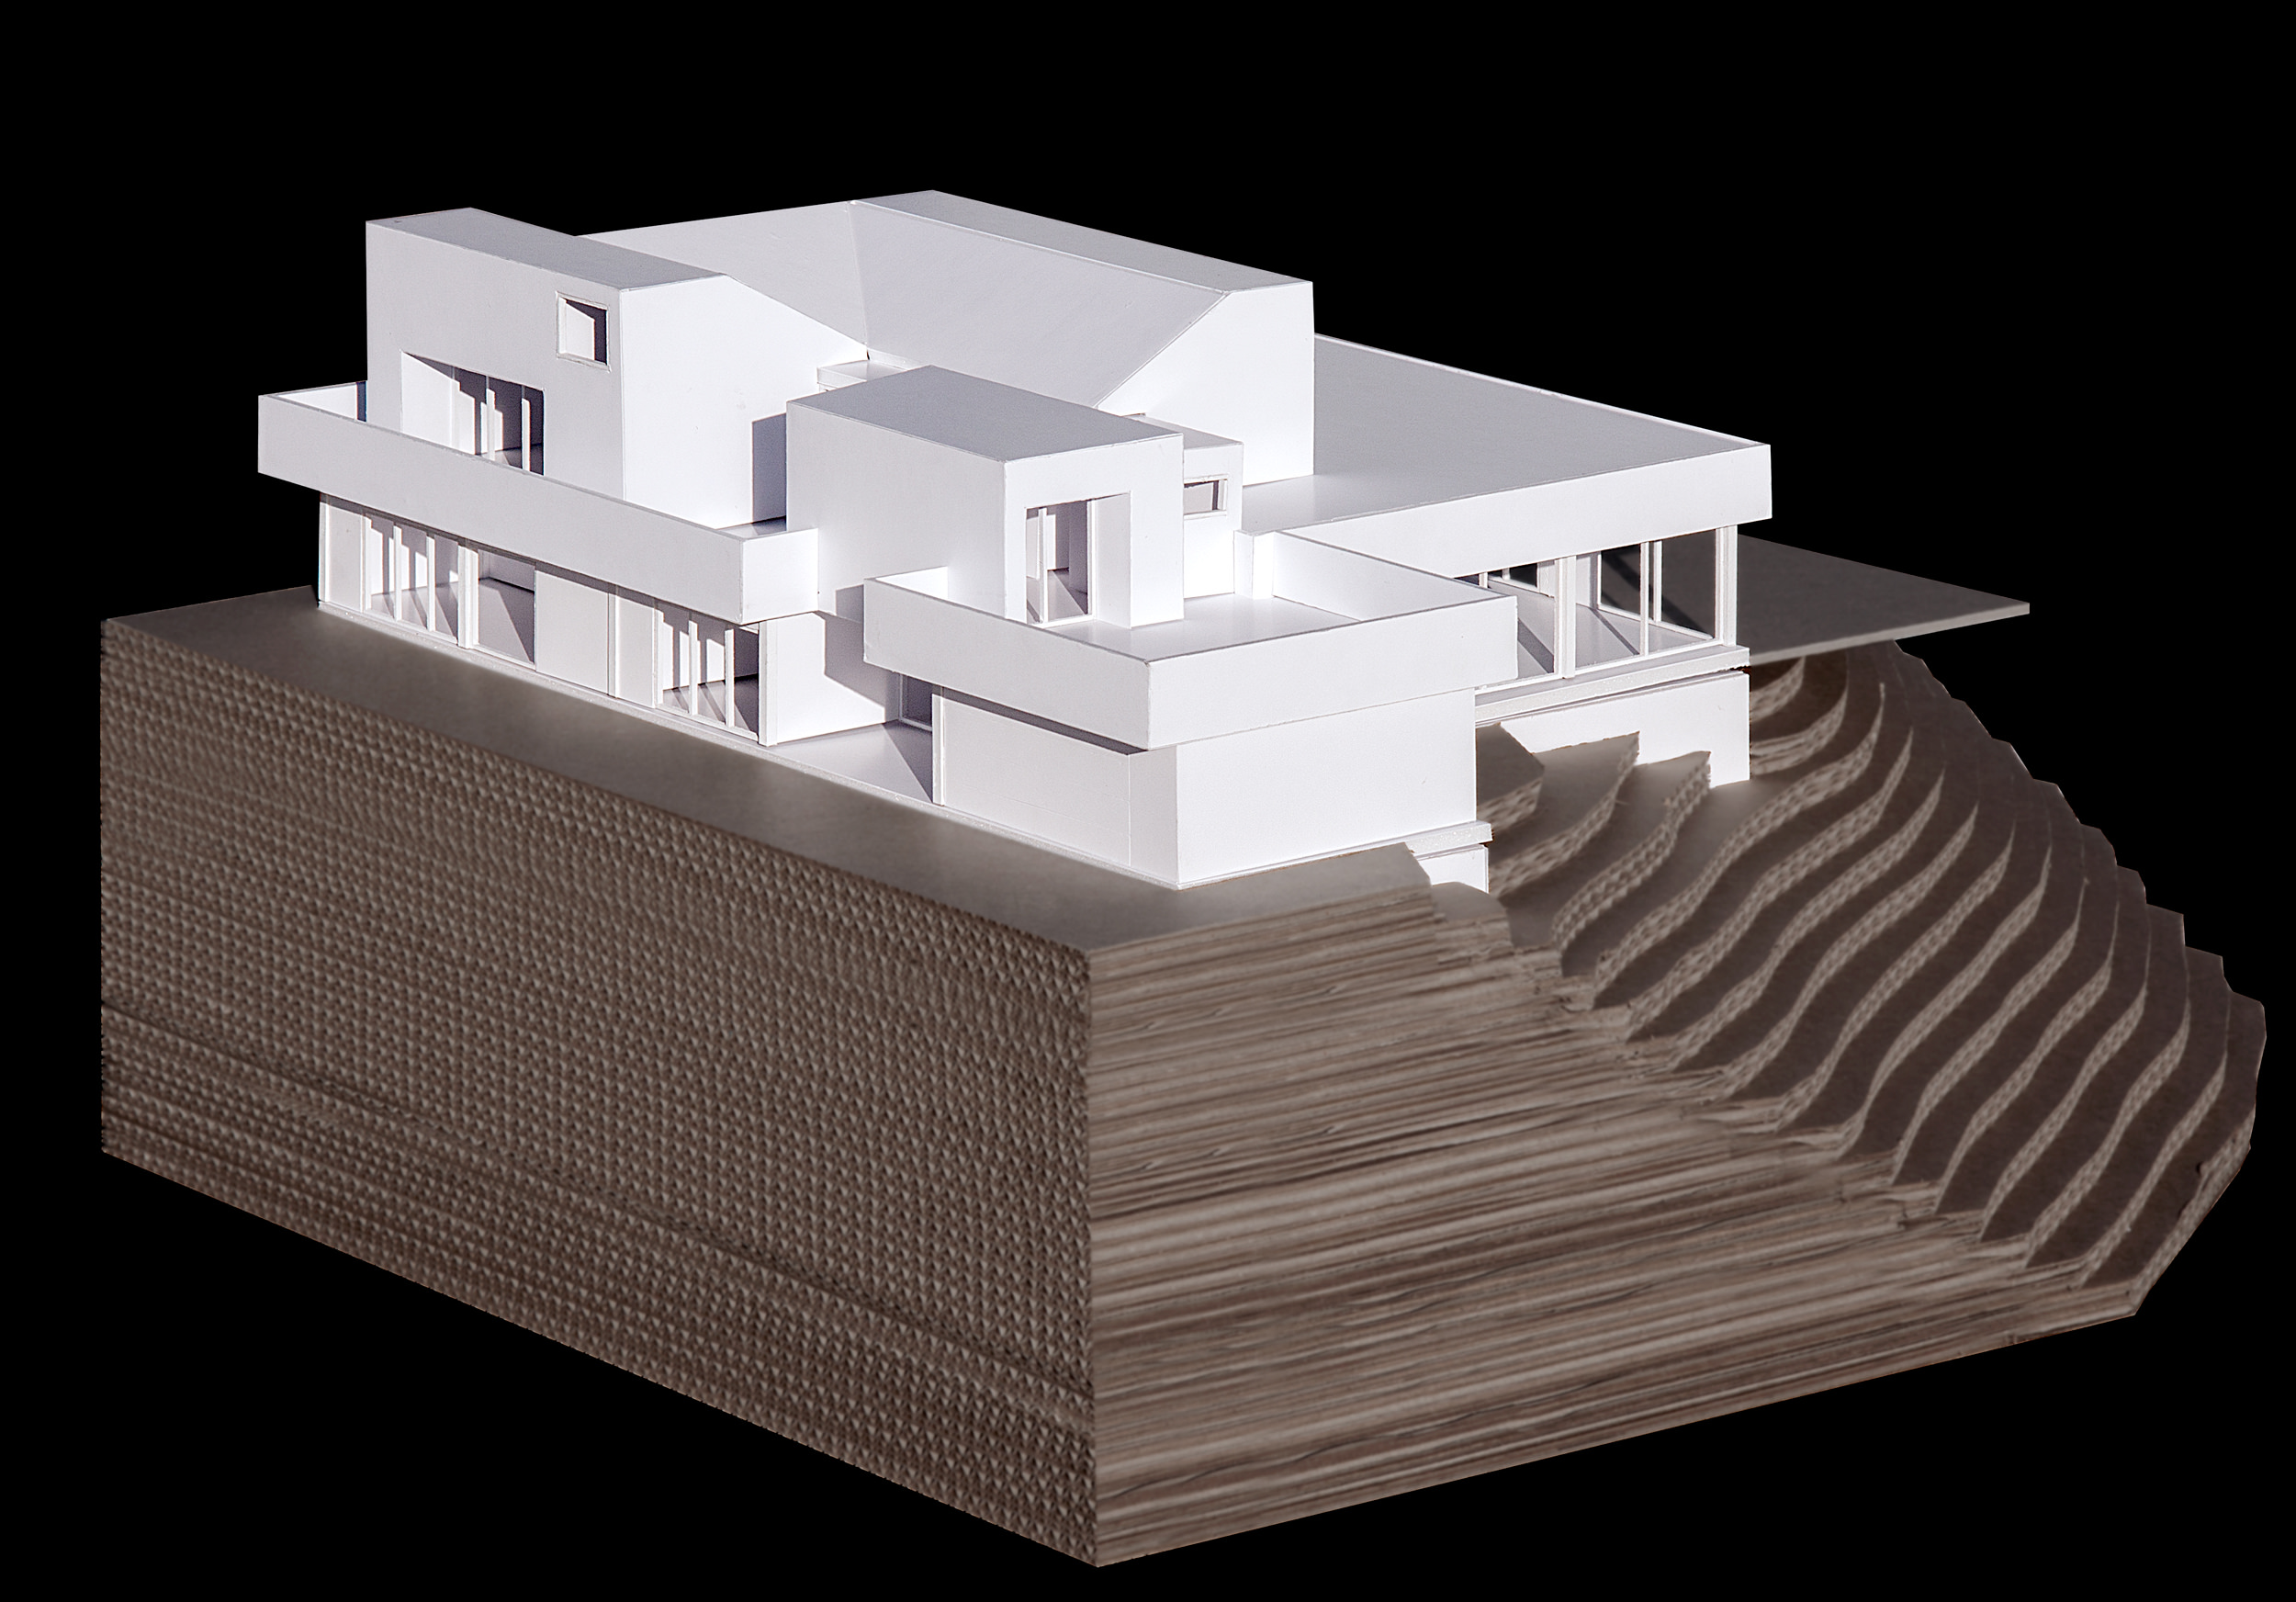 View of the model showing the facade facing the street.